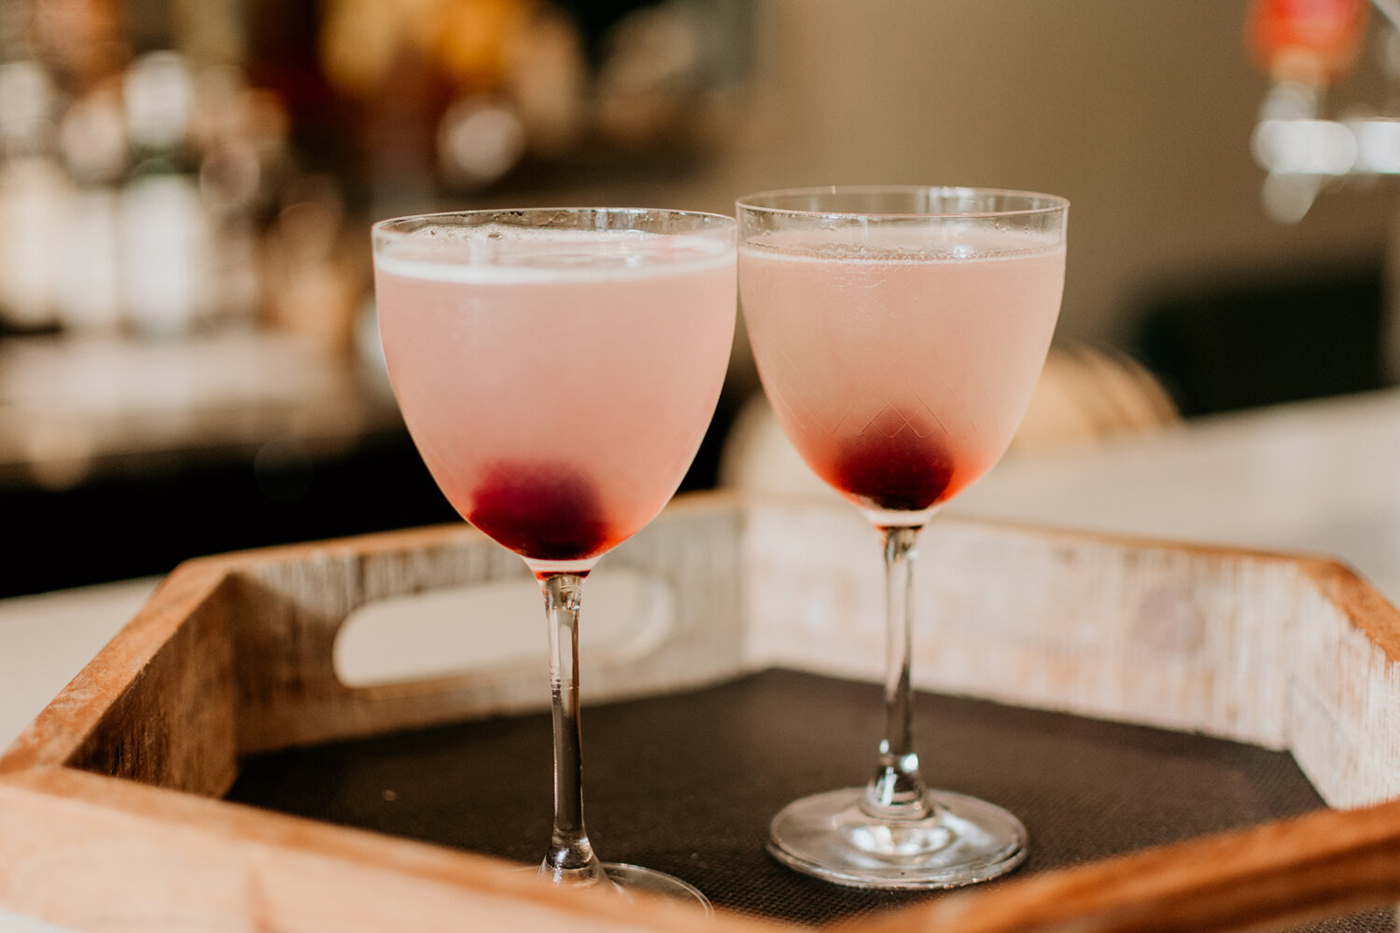 The Common Stove cocktails